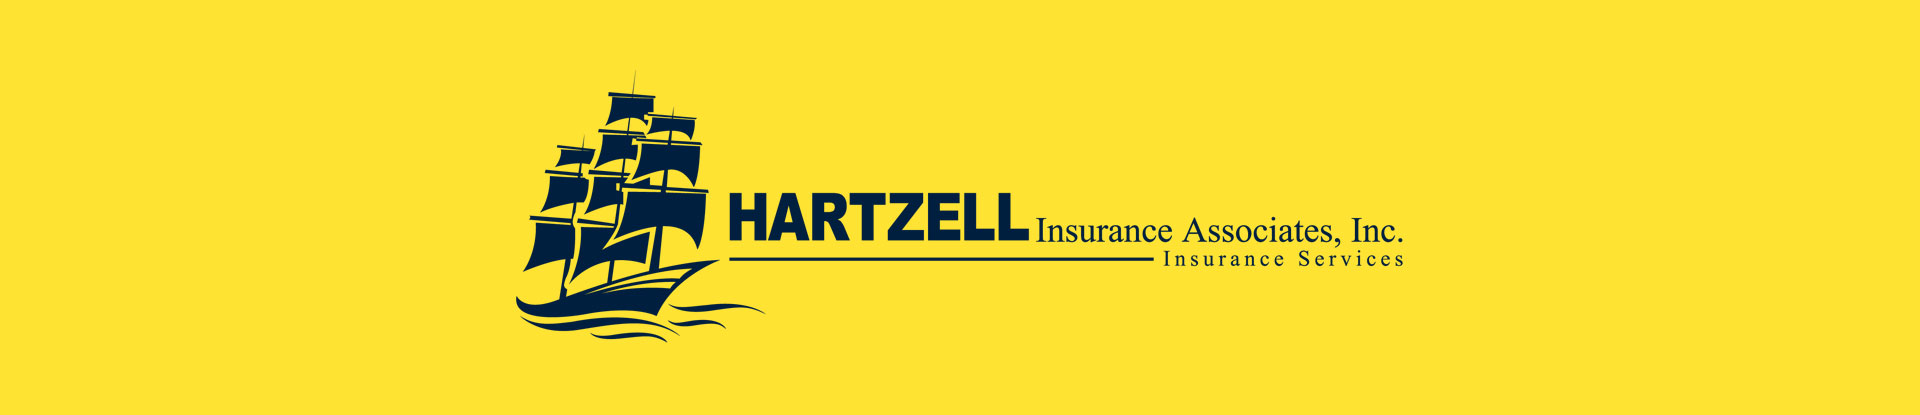 Hartzell Insurance Associates